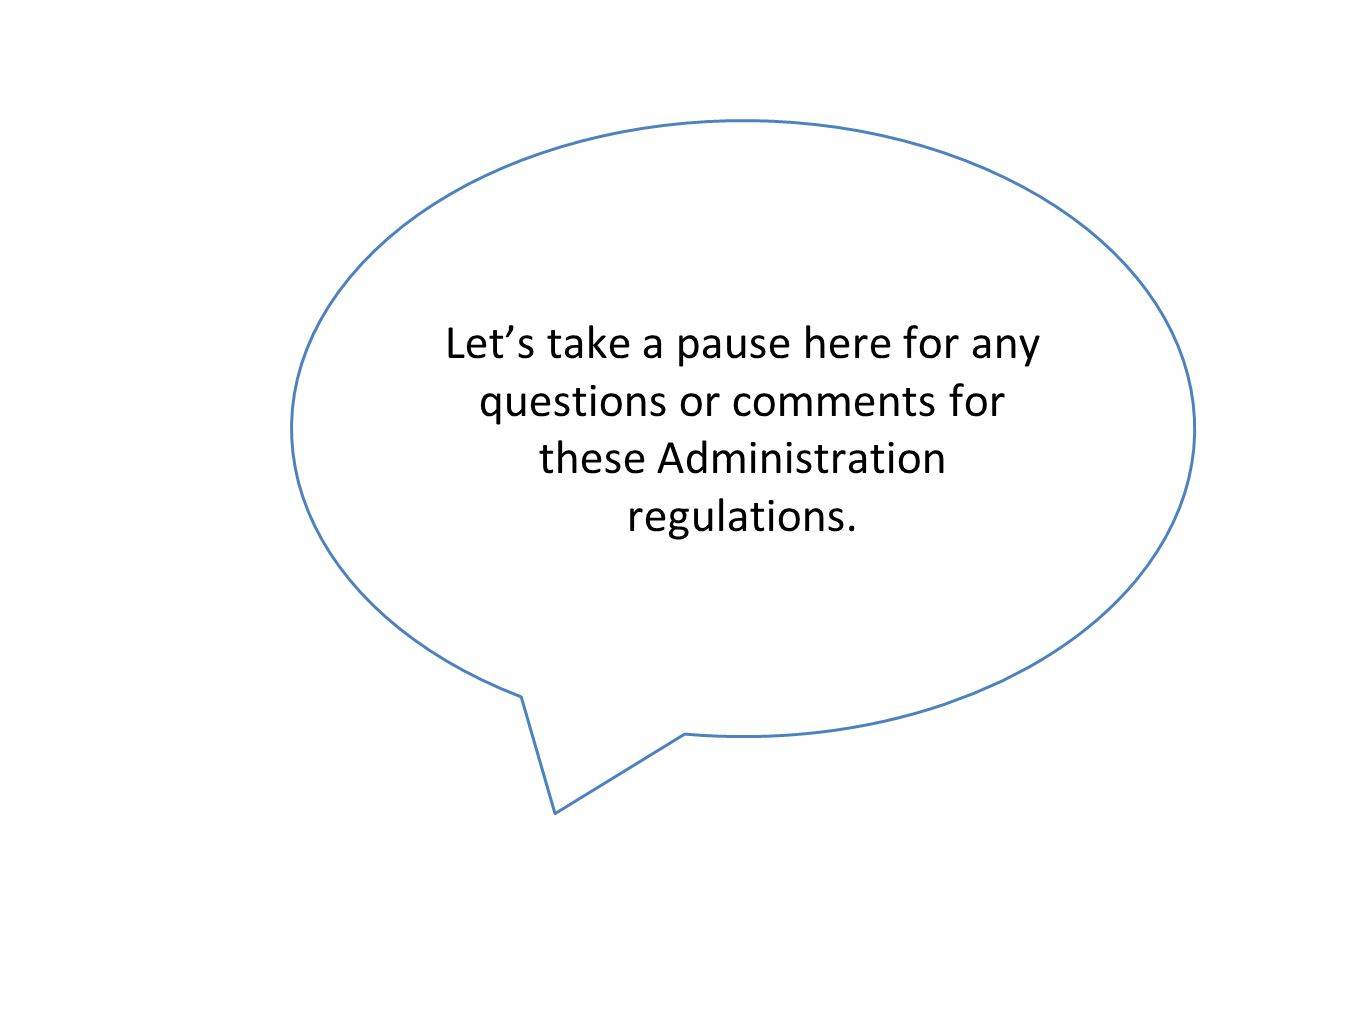 Let's take a pause here for any questions or comments for these Administration regulations.